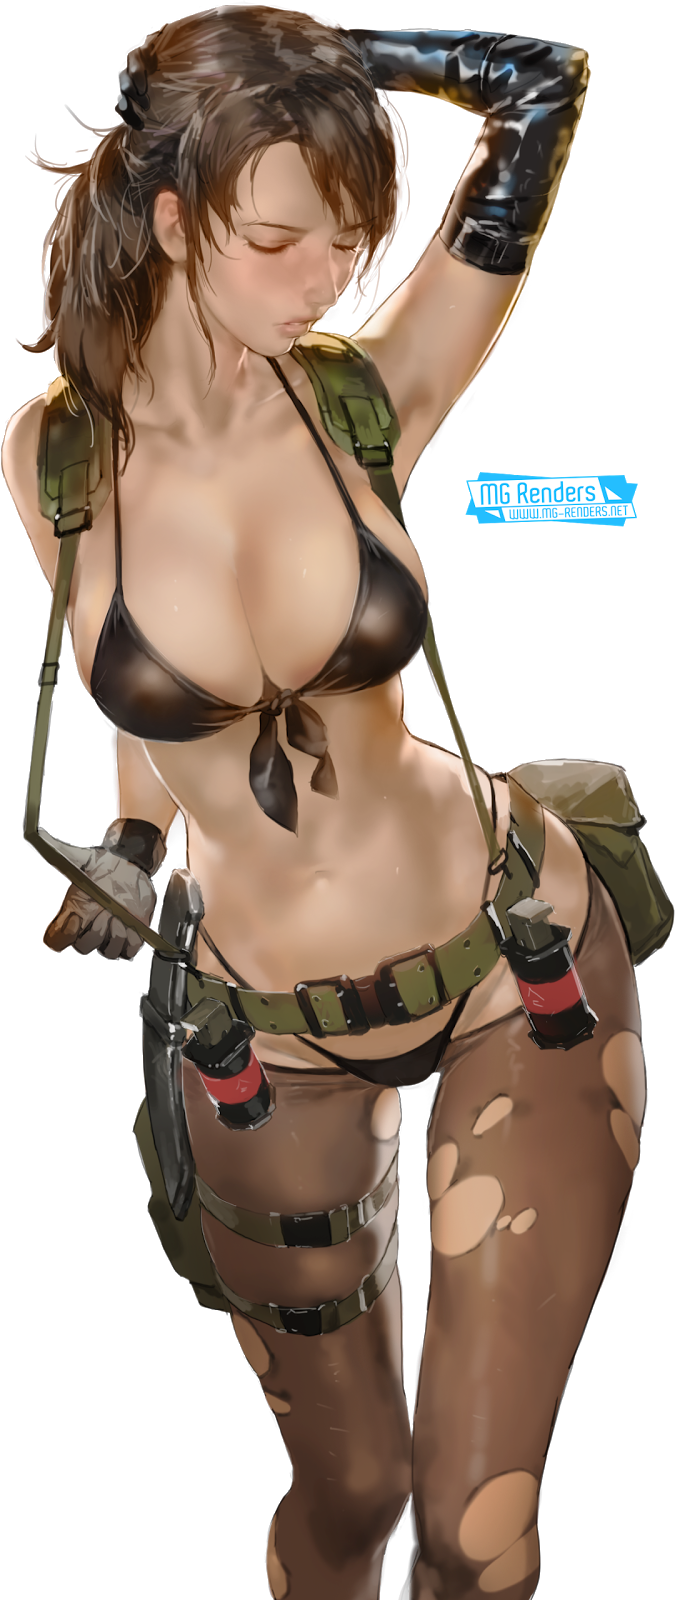 Tags: Anime, Render,  Armpit,  Metal Gear Solid,  Quiet,  PNG, Image, Picture